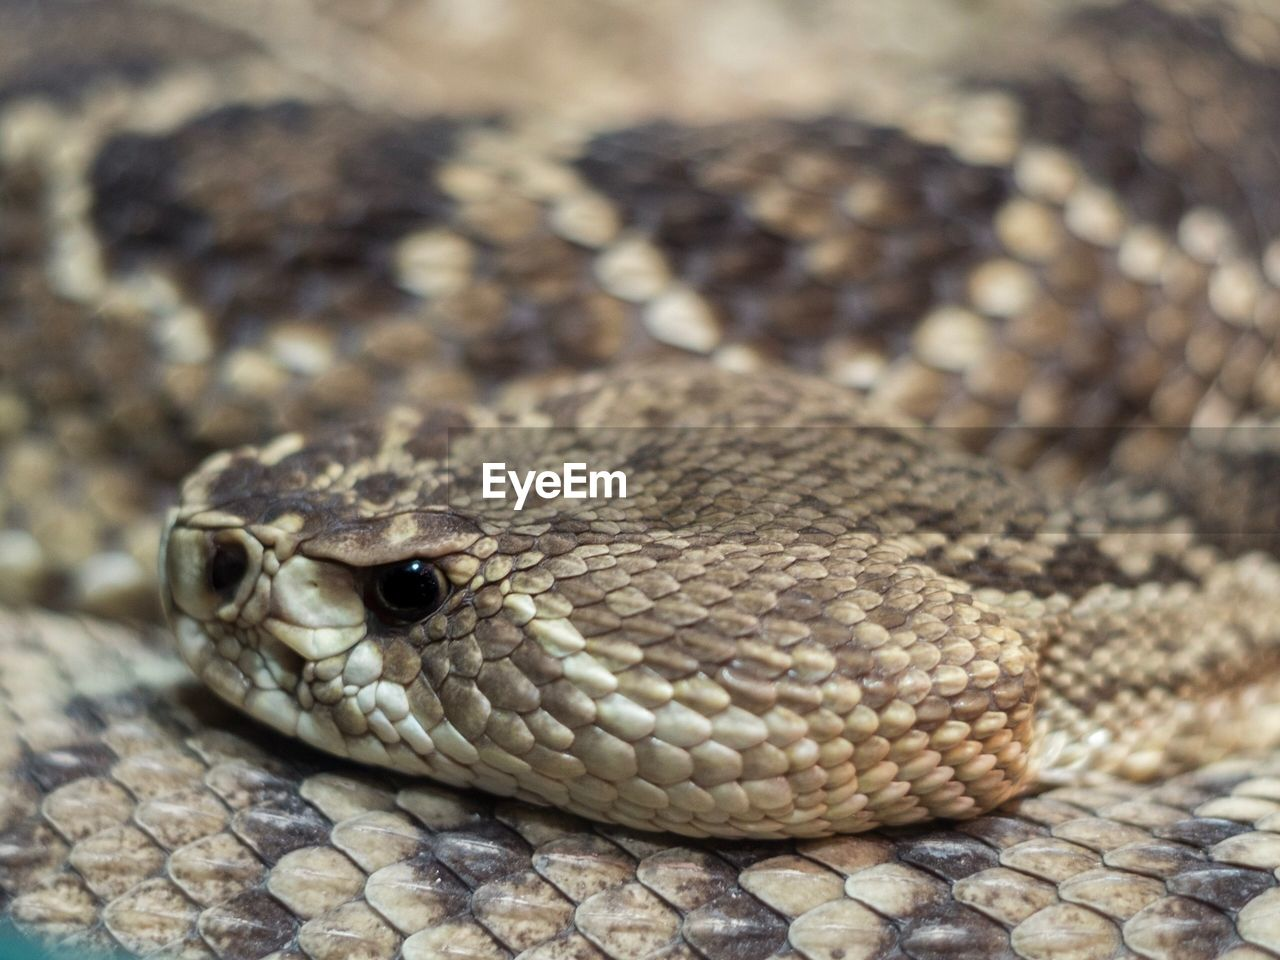 reptile, snake, one animal, animal themes, animal, animal wildlife, animals in the wild, vertebrate, close-up, animal body part, no people, animal scale, focus on foreground, pattern, animal head, day, natural pattern, nature, brown, animal markings, poisonous, animal eye